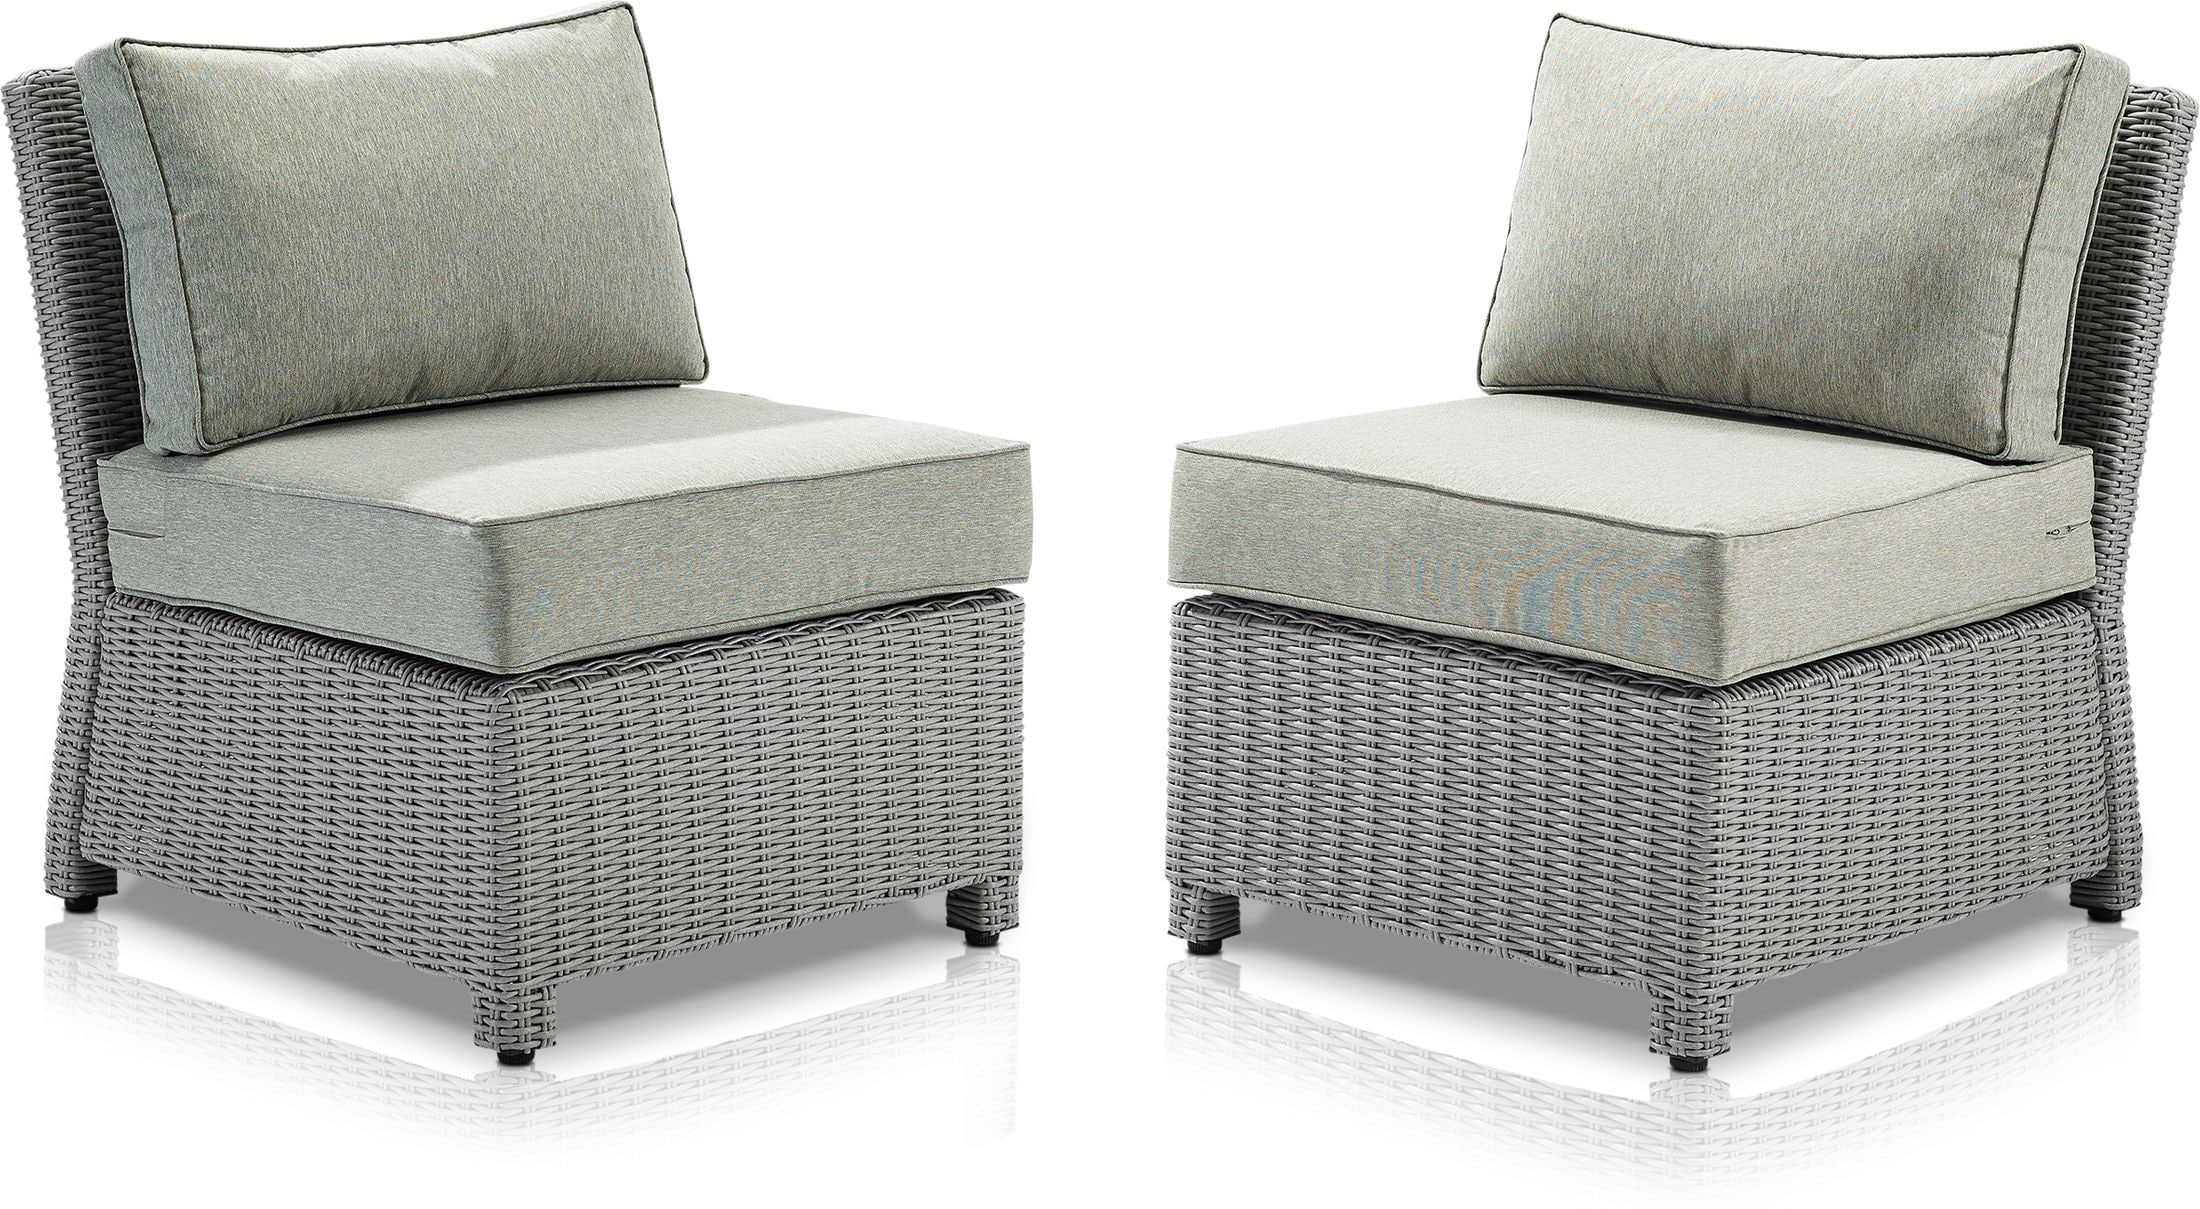 Outdoor Furniture - Destin Set of 2 Outdoor Armless Chairs